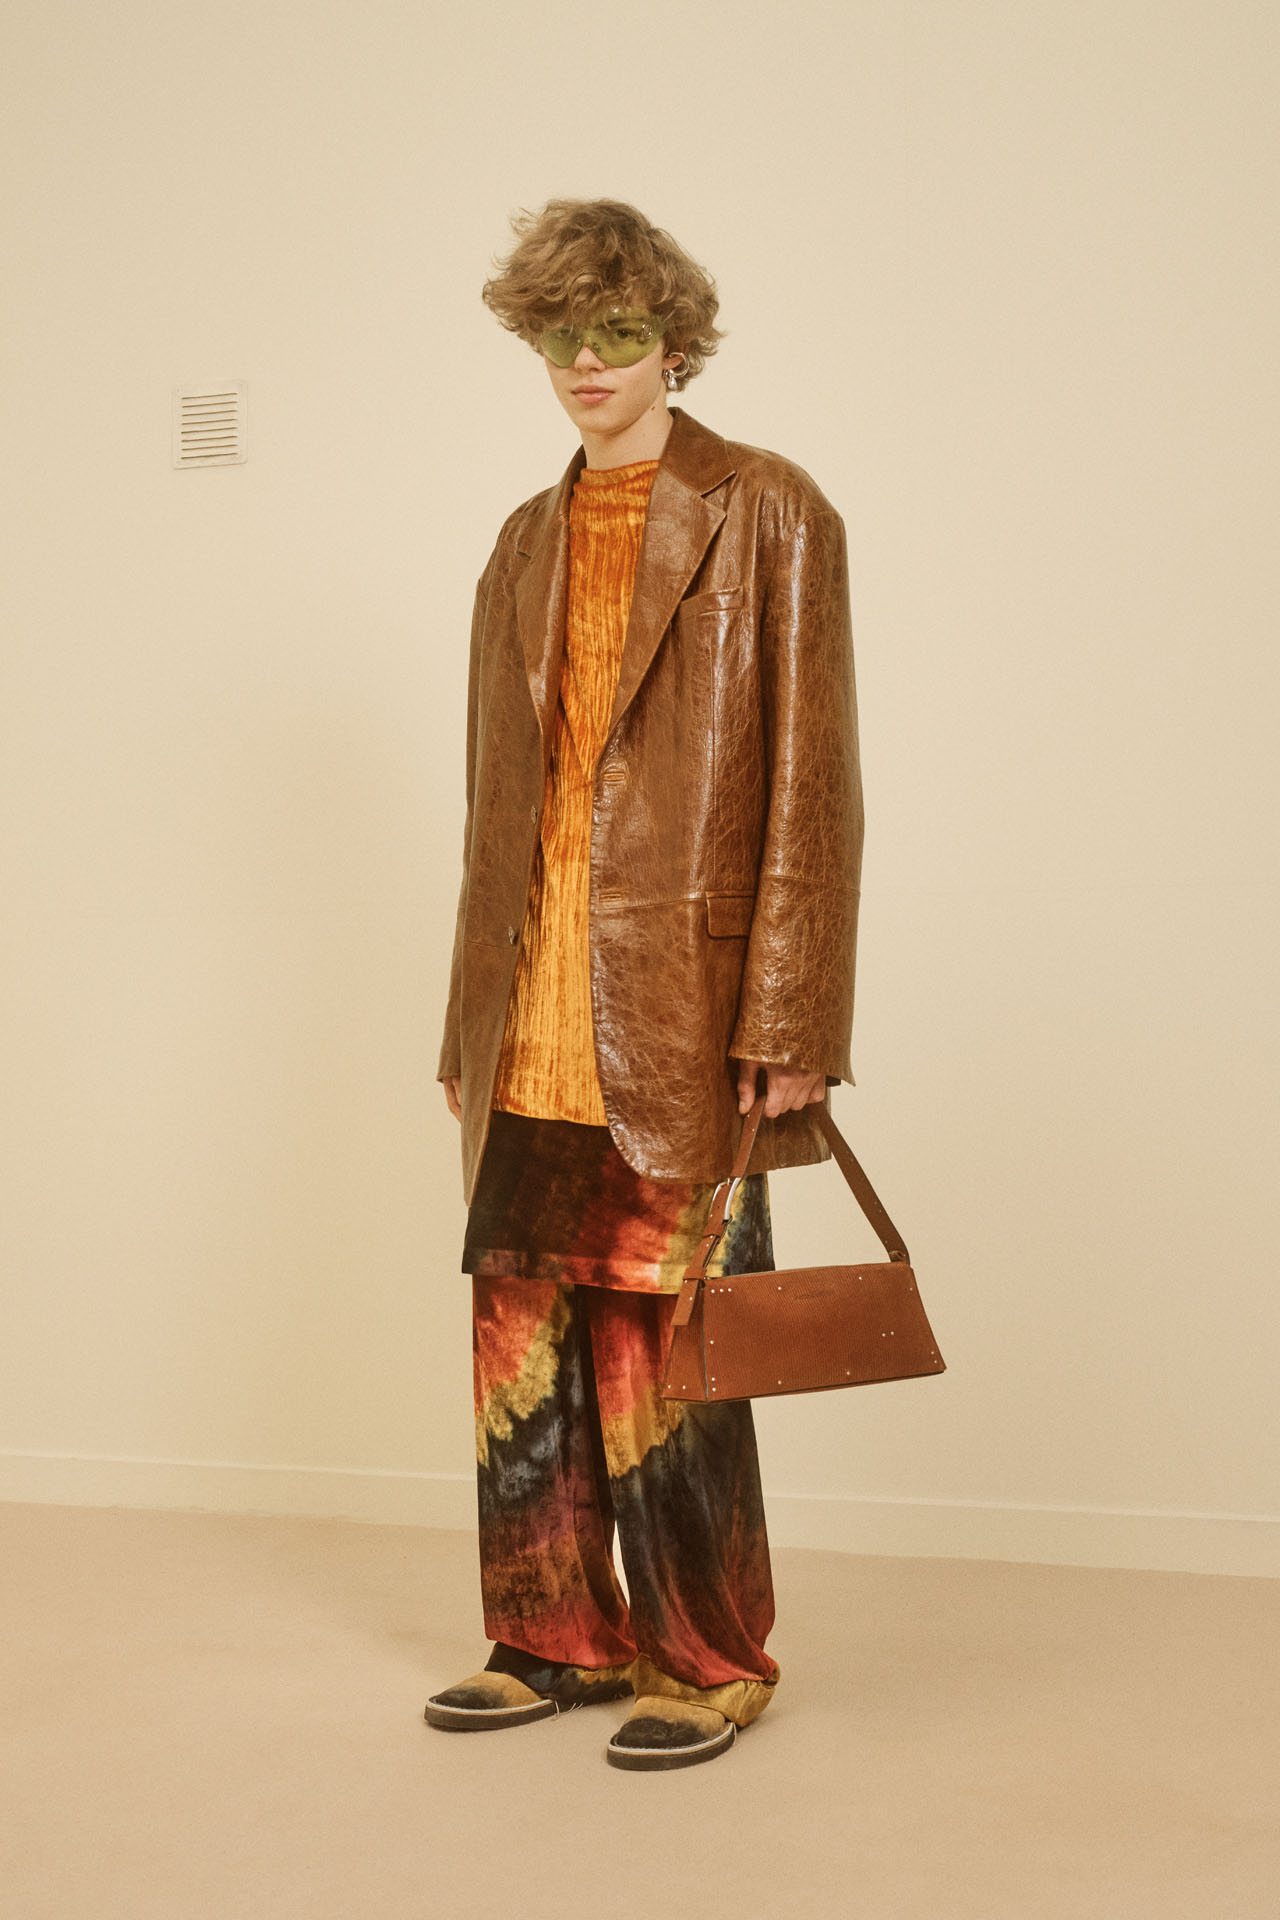 Look Fall/Winter 2021, image 12